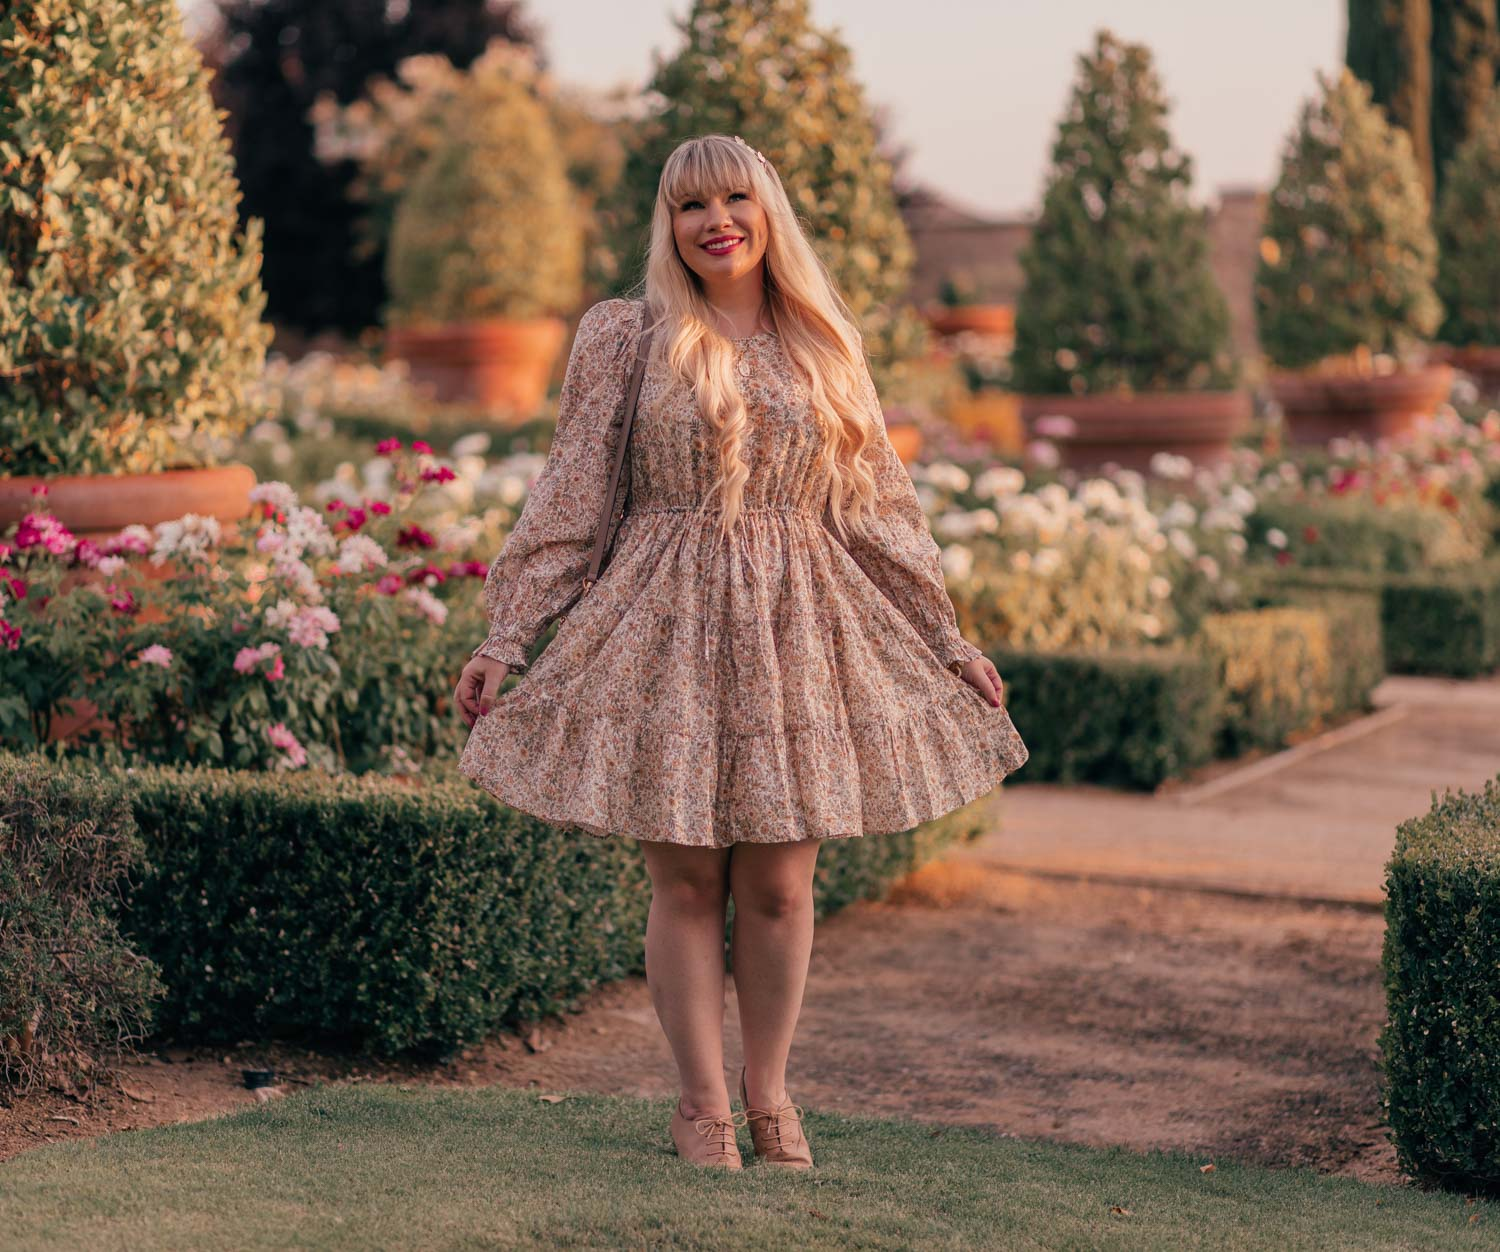 Feminine fashion blogger Elizabeth Hugen of Lizzie in Lace shares a casual feminine outfit for summer including this & Other Stories dress, Gucci Marmont Handbag and Anothersole shoes